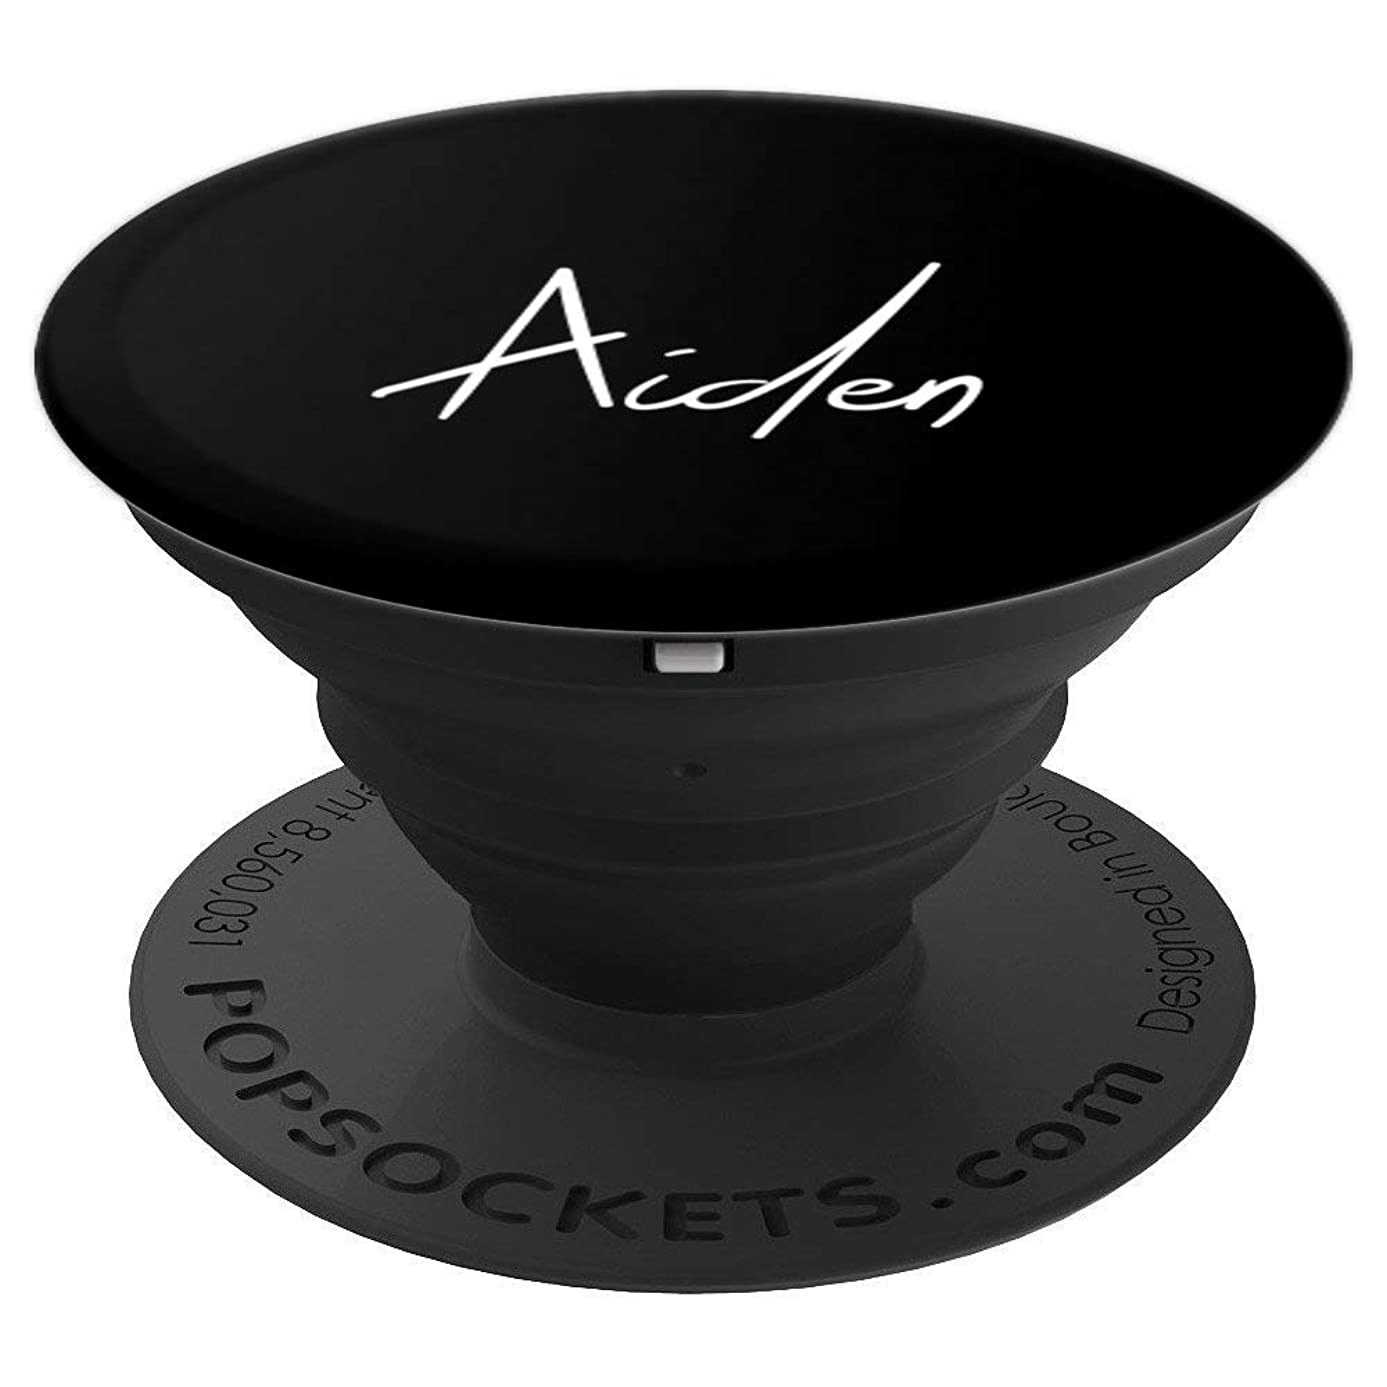 Aiden Name White on Black - Aiden - PopSockets Grip and Stand for Phones and Tablets